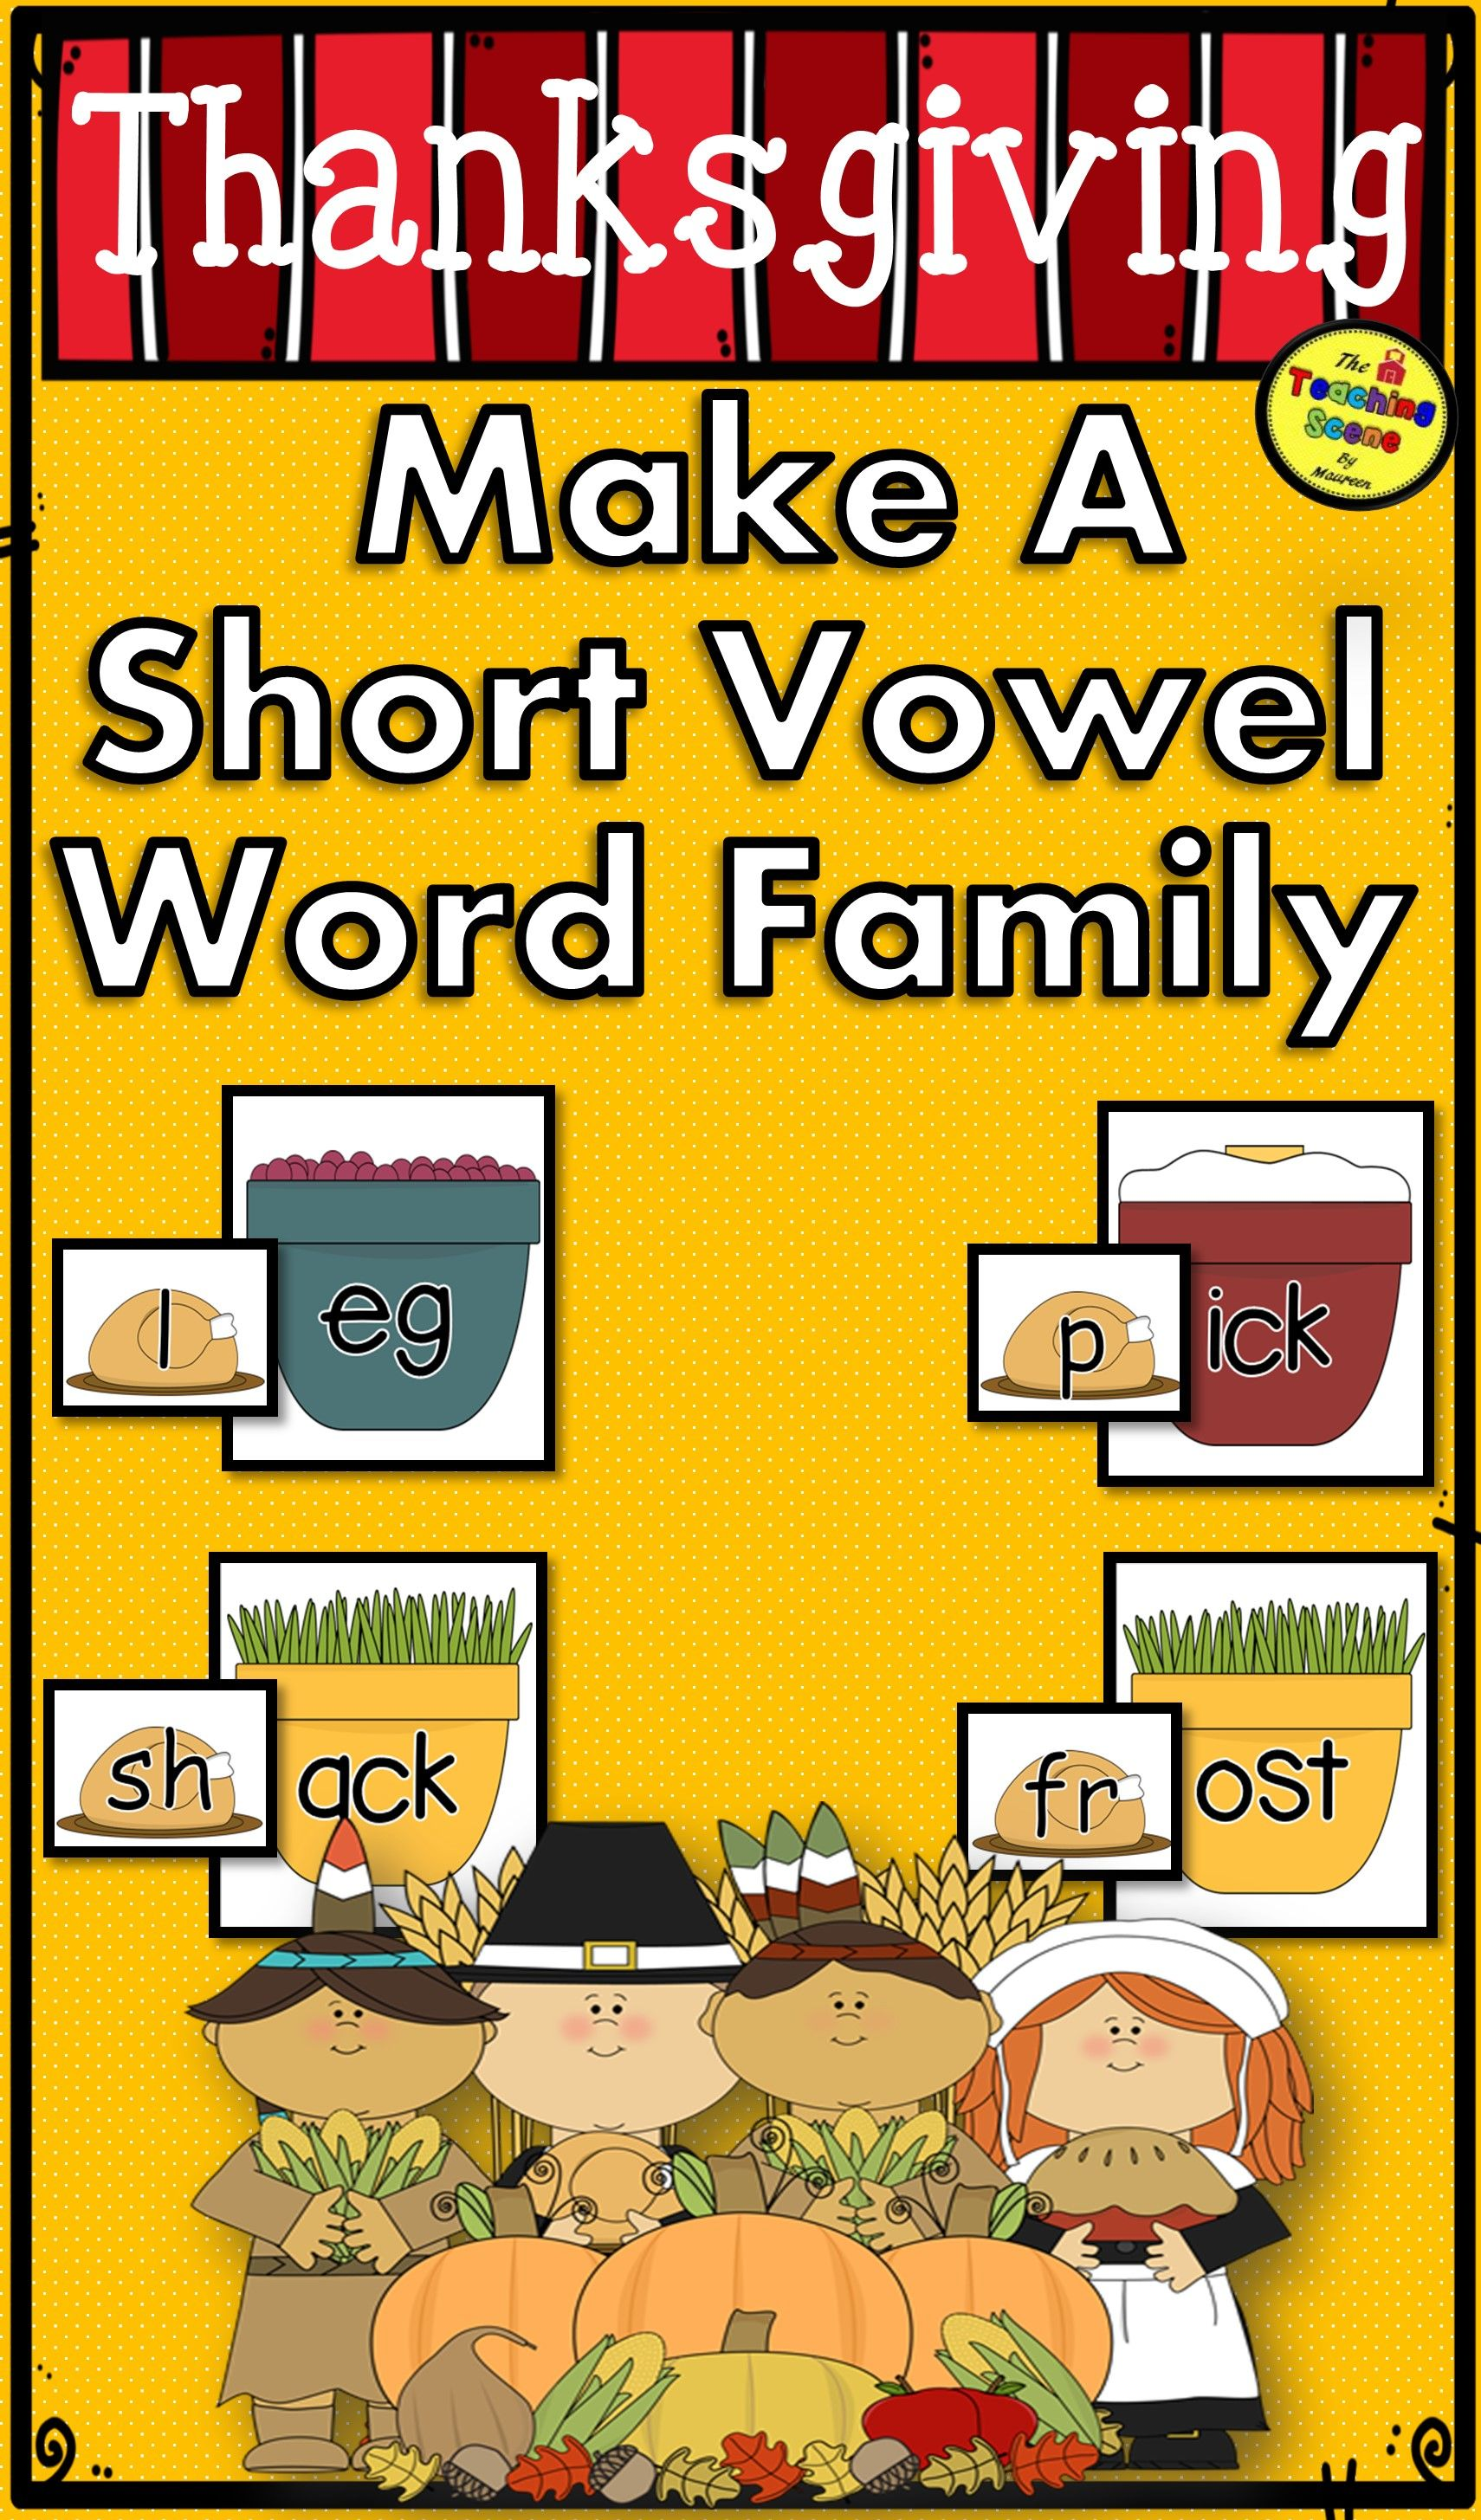 Thanksgiving Make A Short Vowel Word Family Center